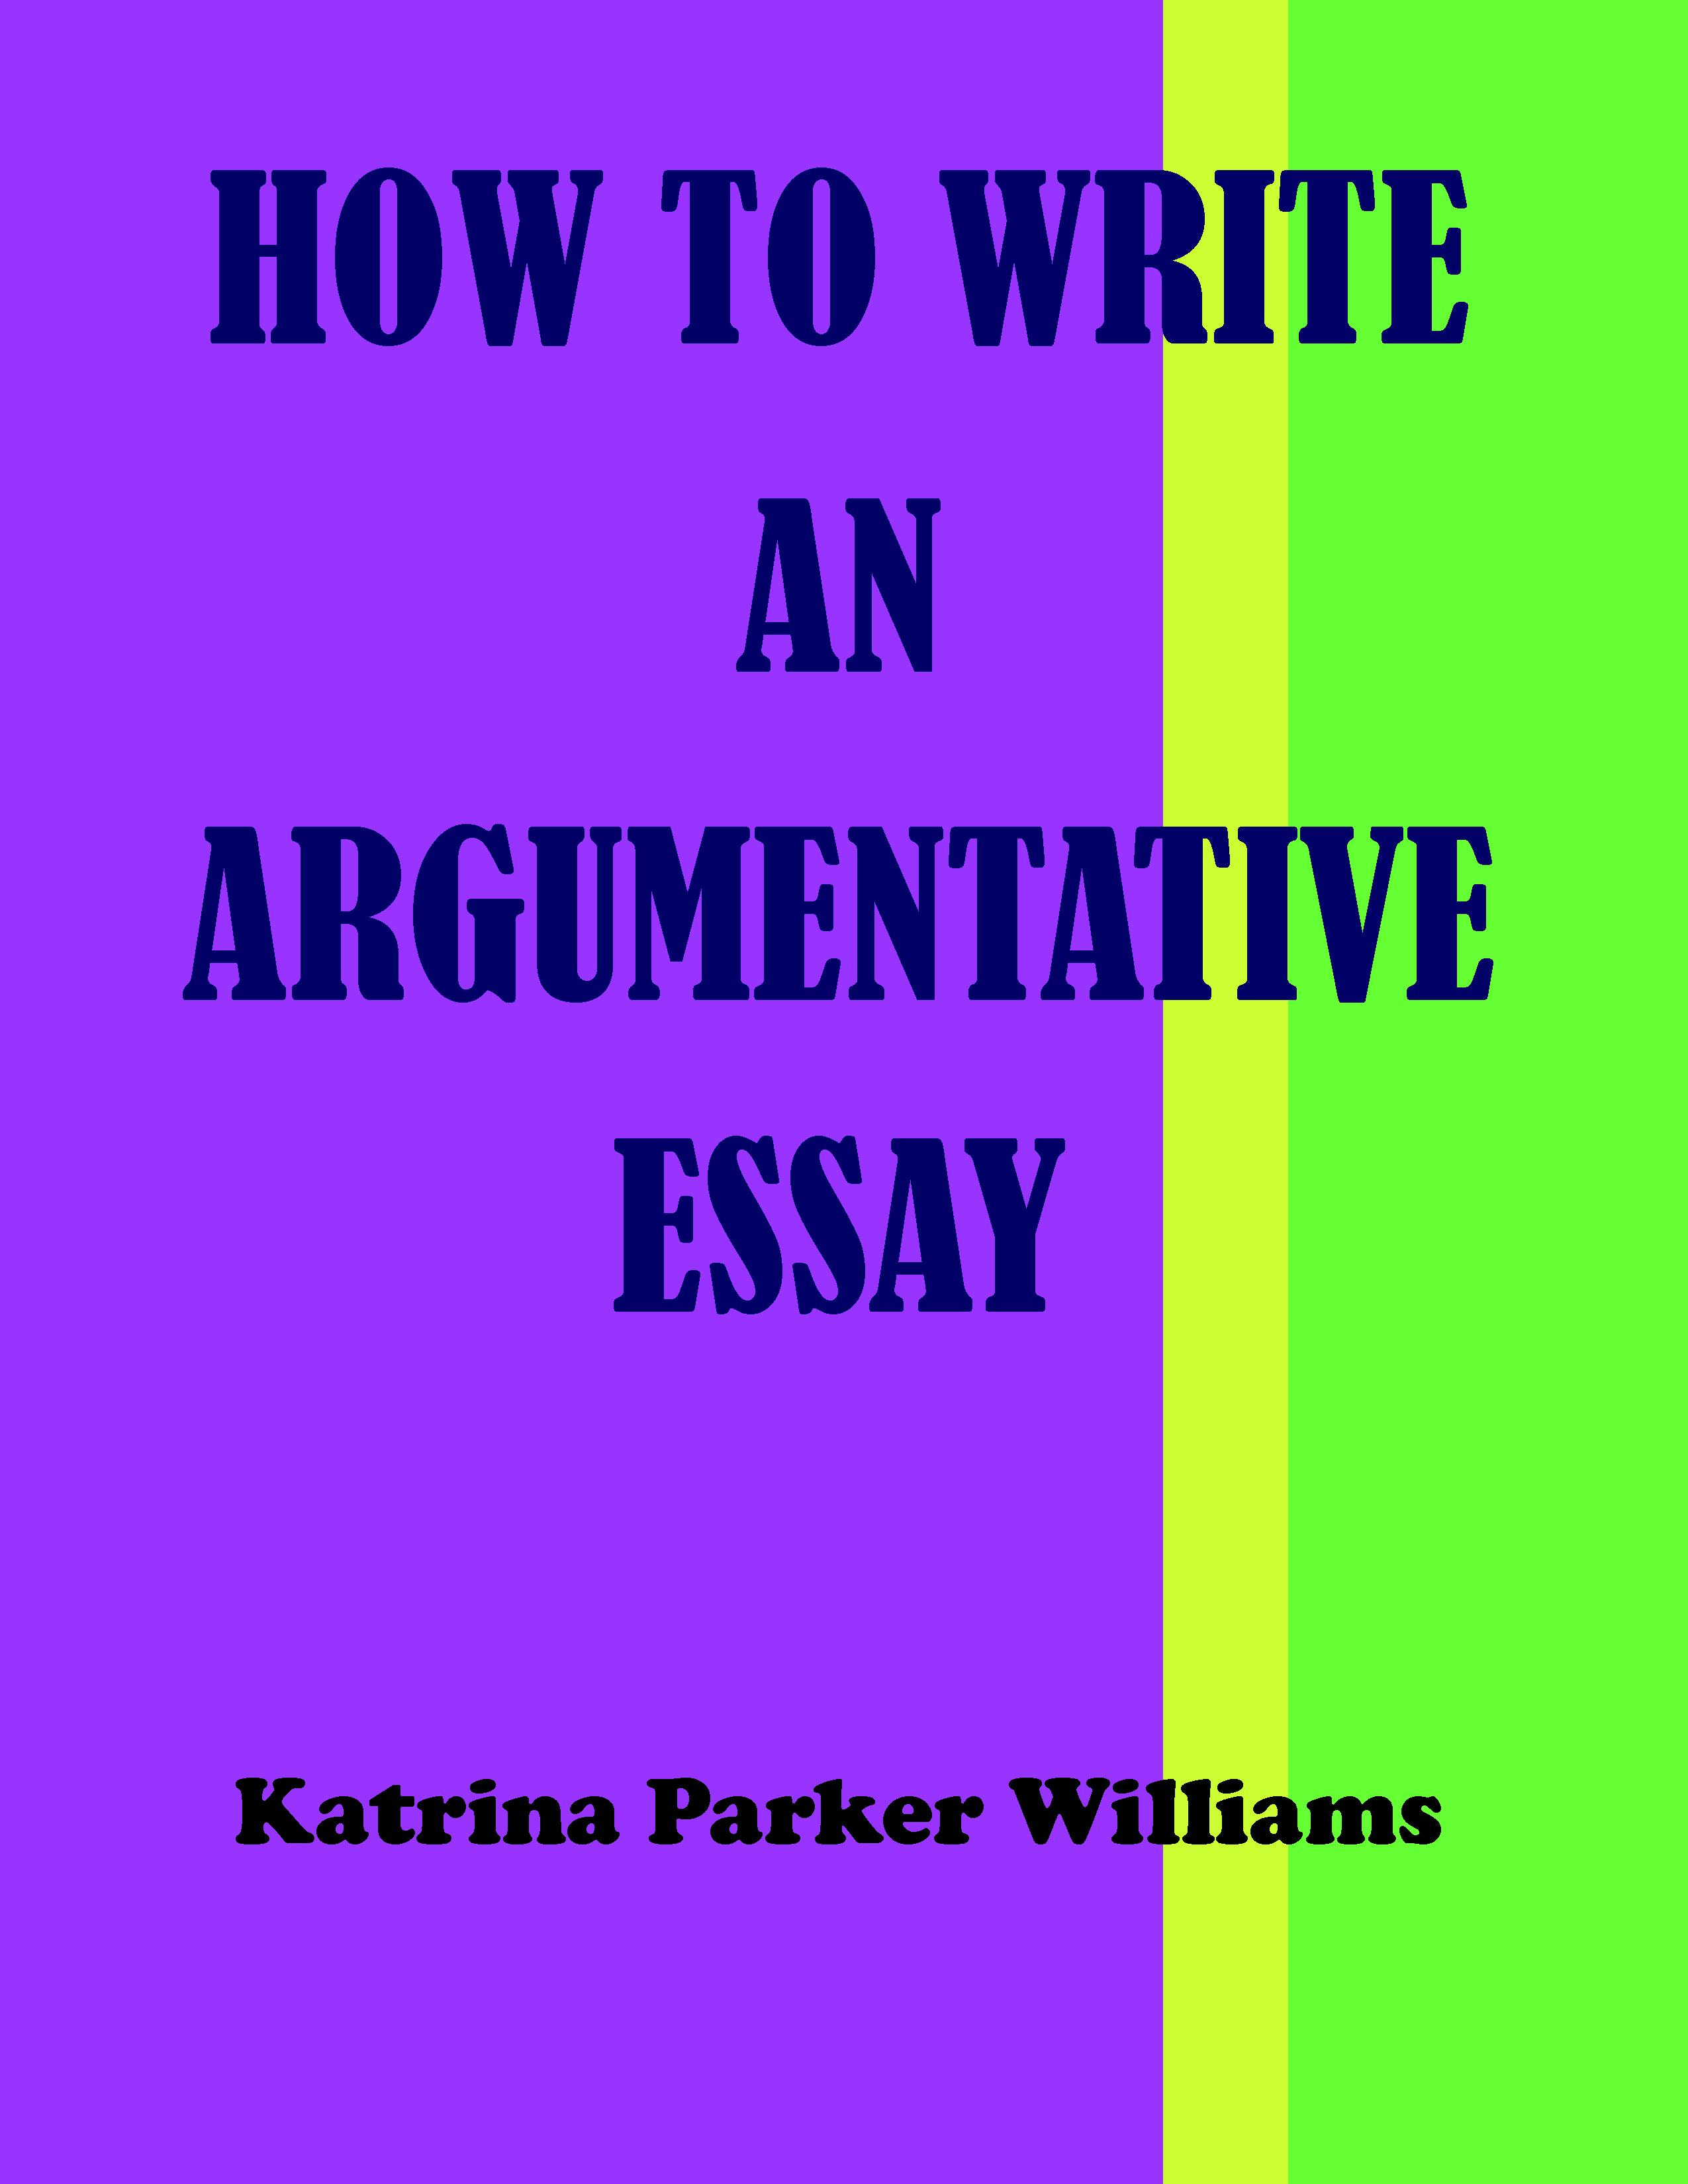 how to write argumentative essay in english